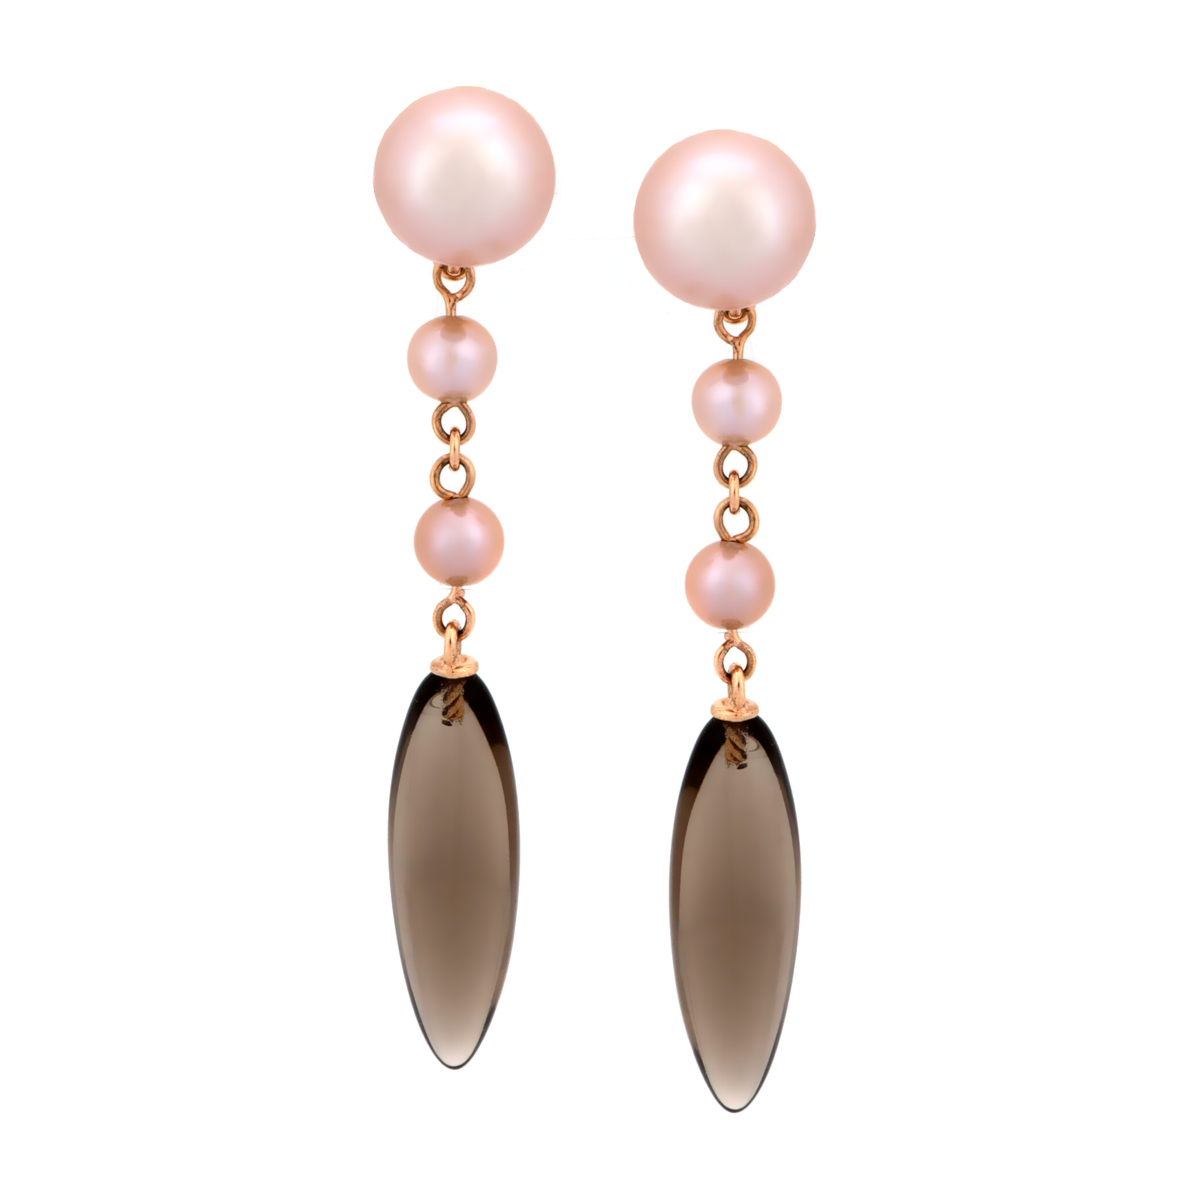 Mimi Milano Smoky Quartz Pearl 18k Rose Gold Earrings - Mimi Milano Jewelry